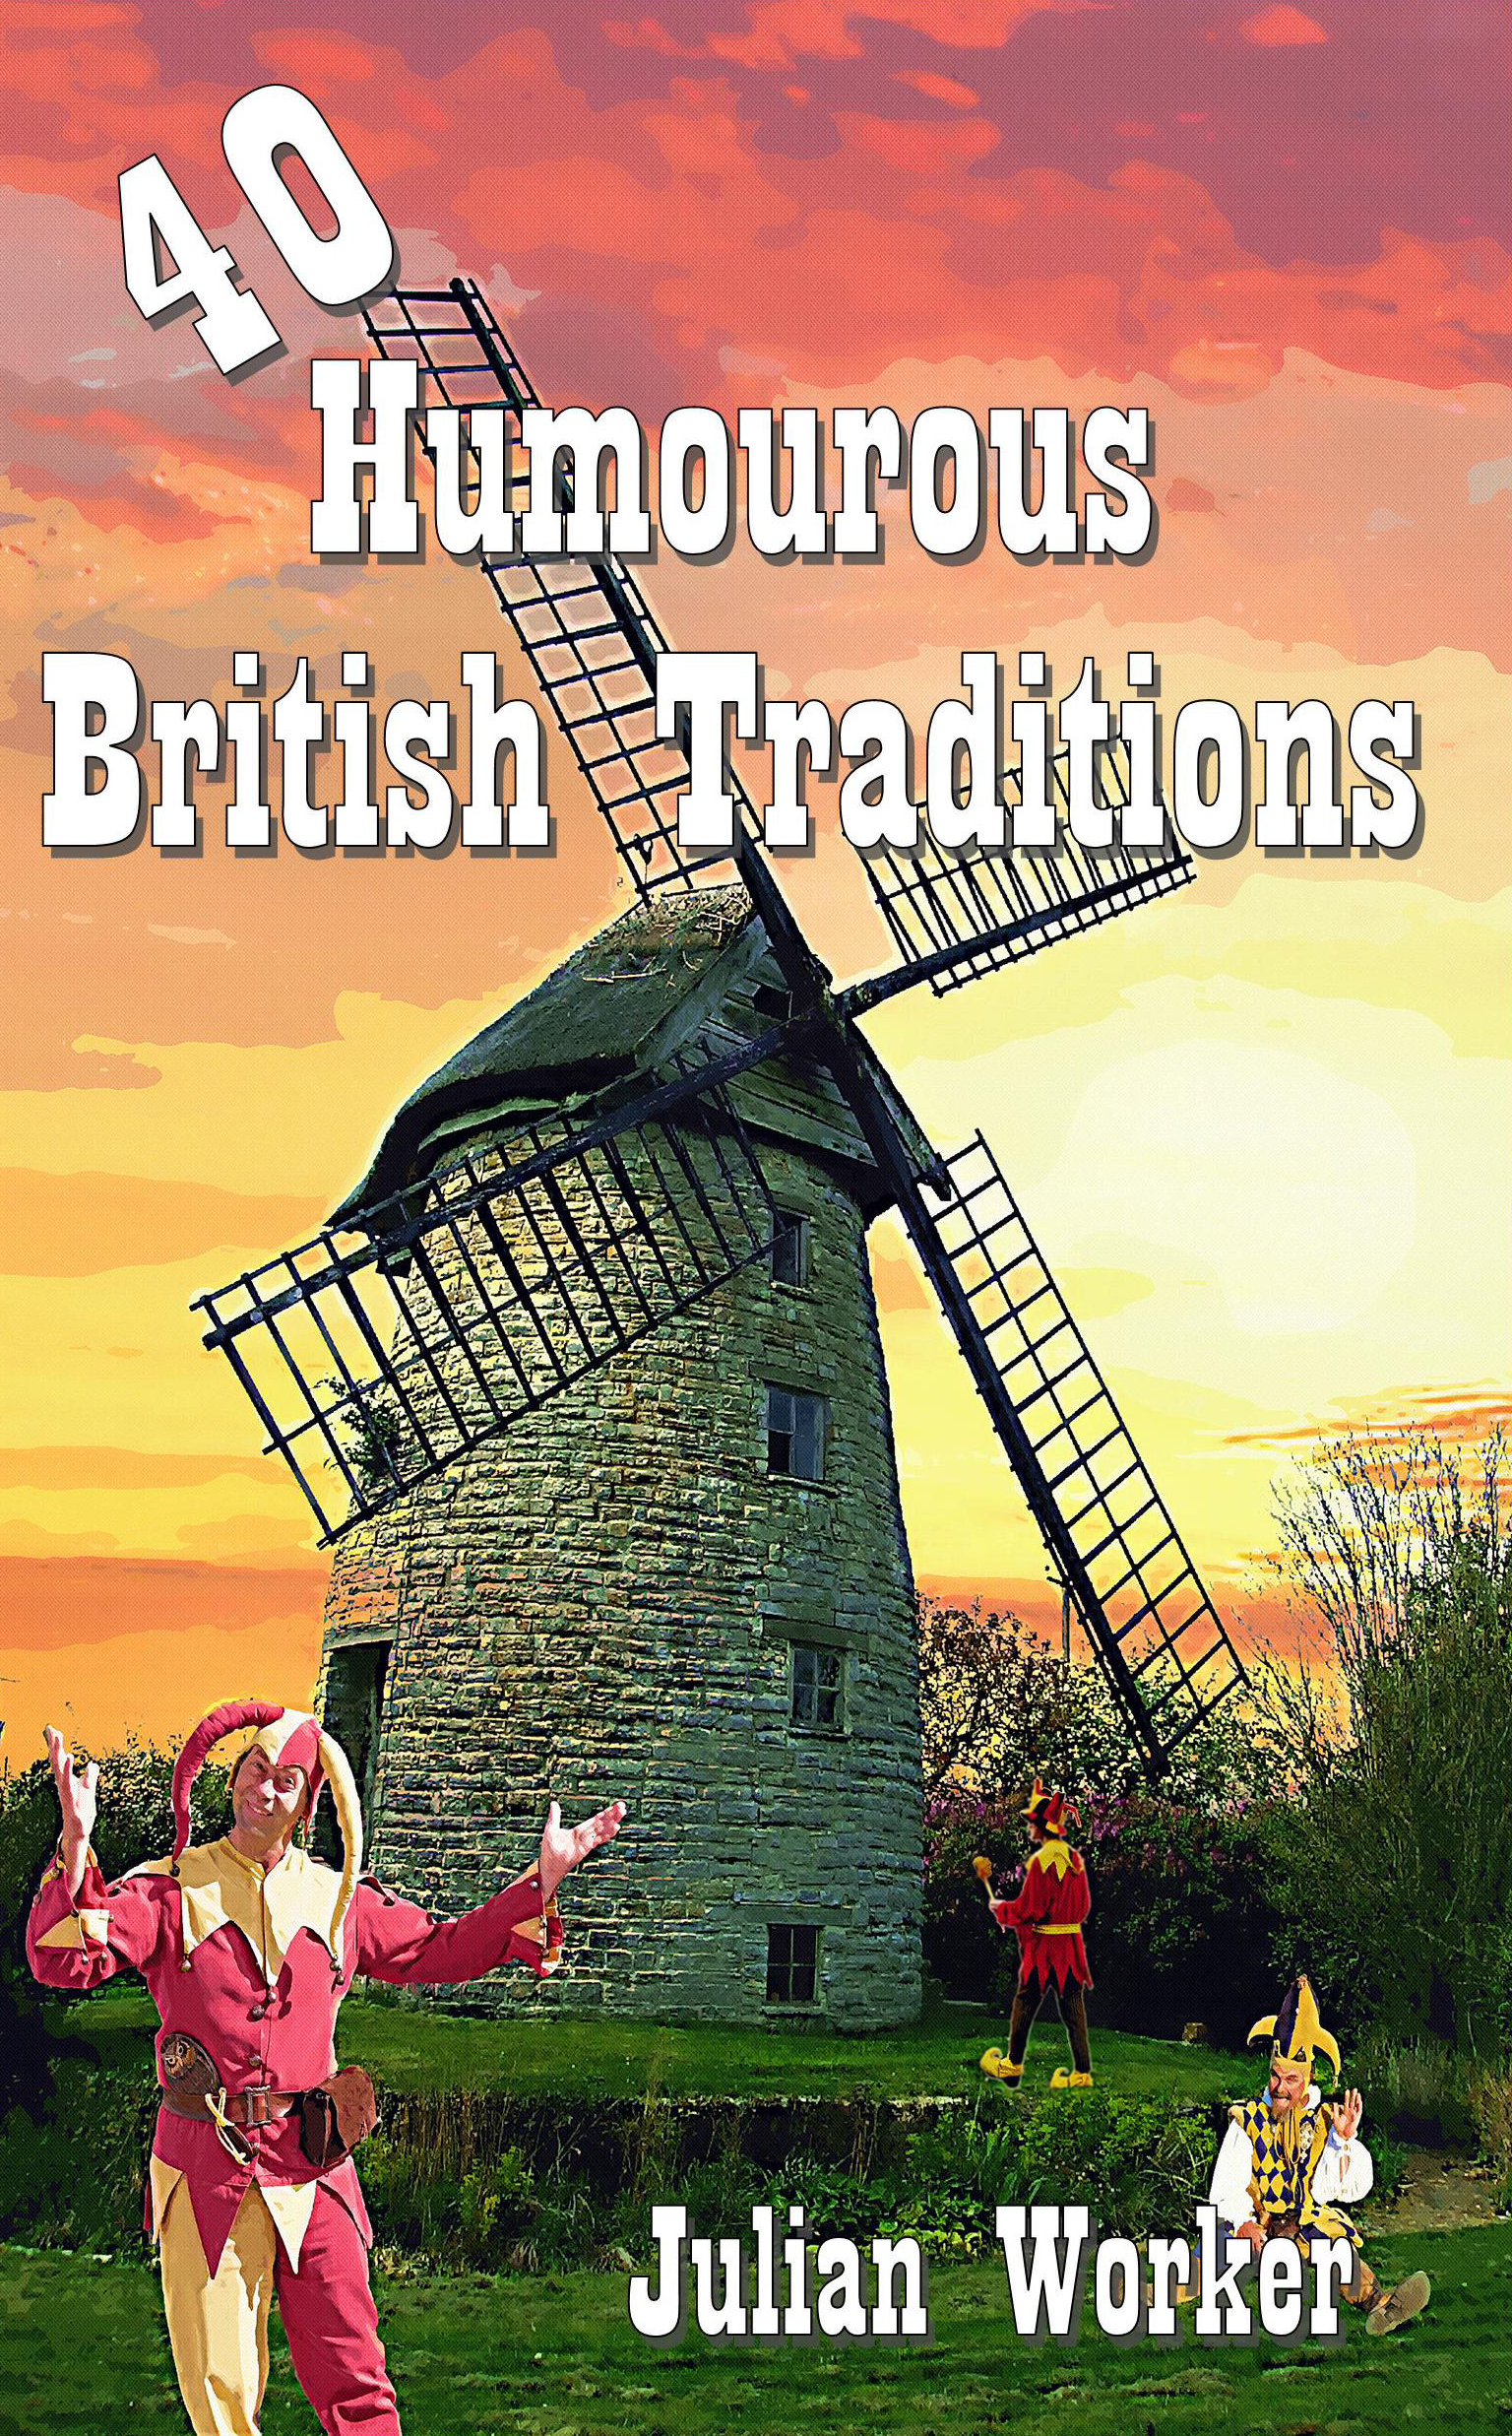 40 Humourous British Traditions